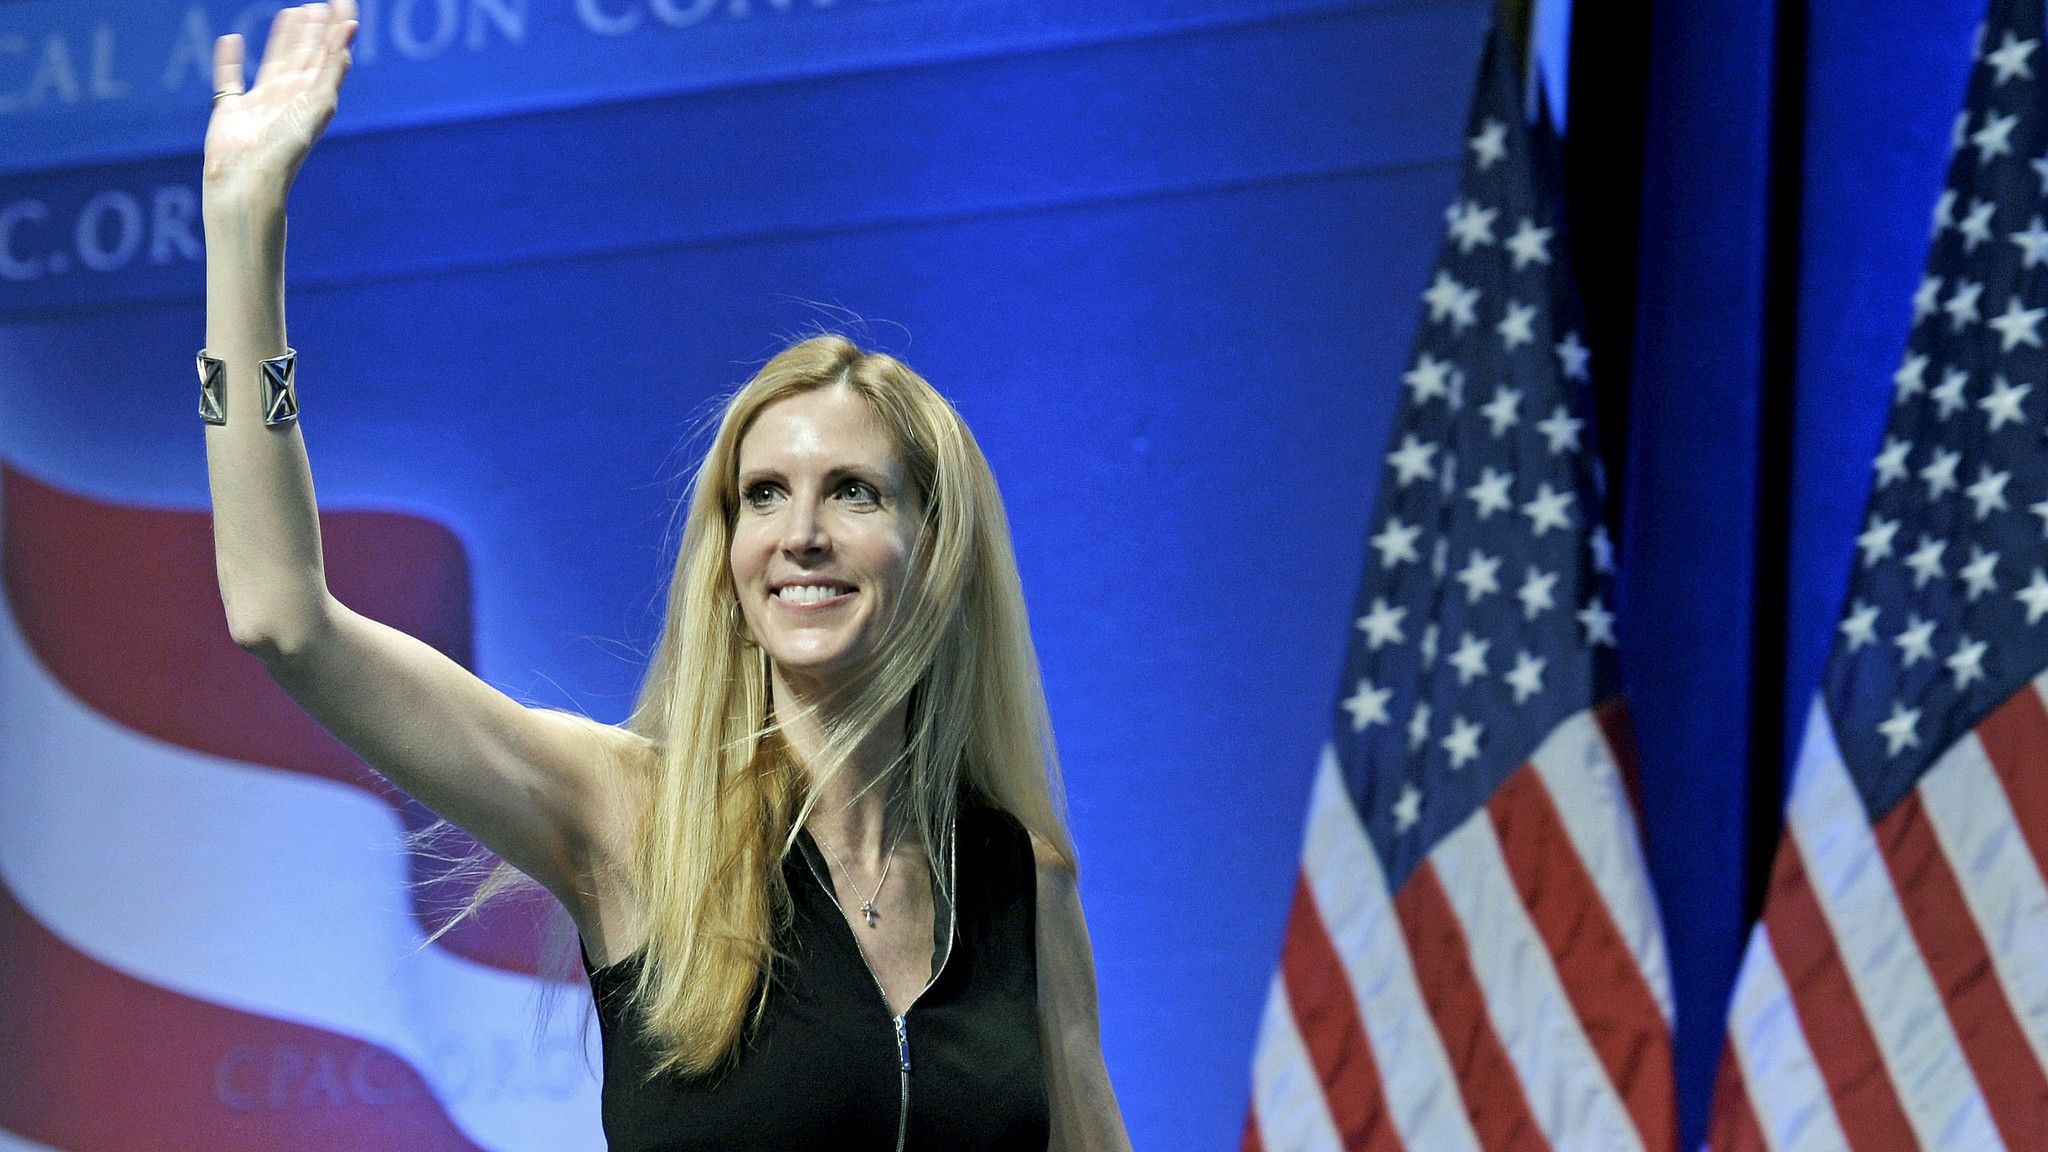 Ann Coulter says she will not speak at Berkeley: 'It's a sad day for free speech' - Los Angeles Times